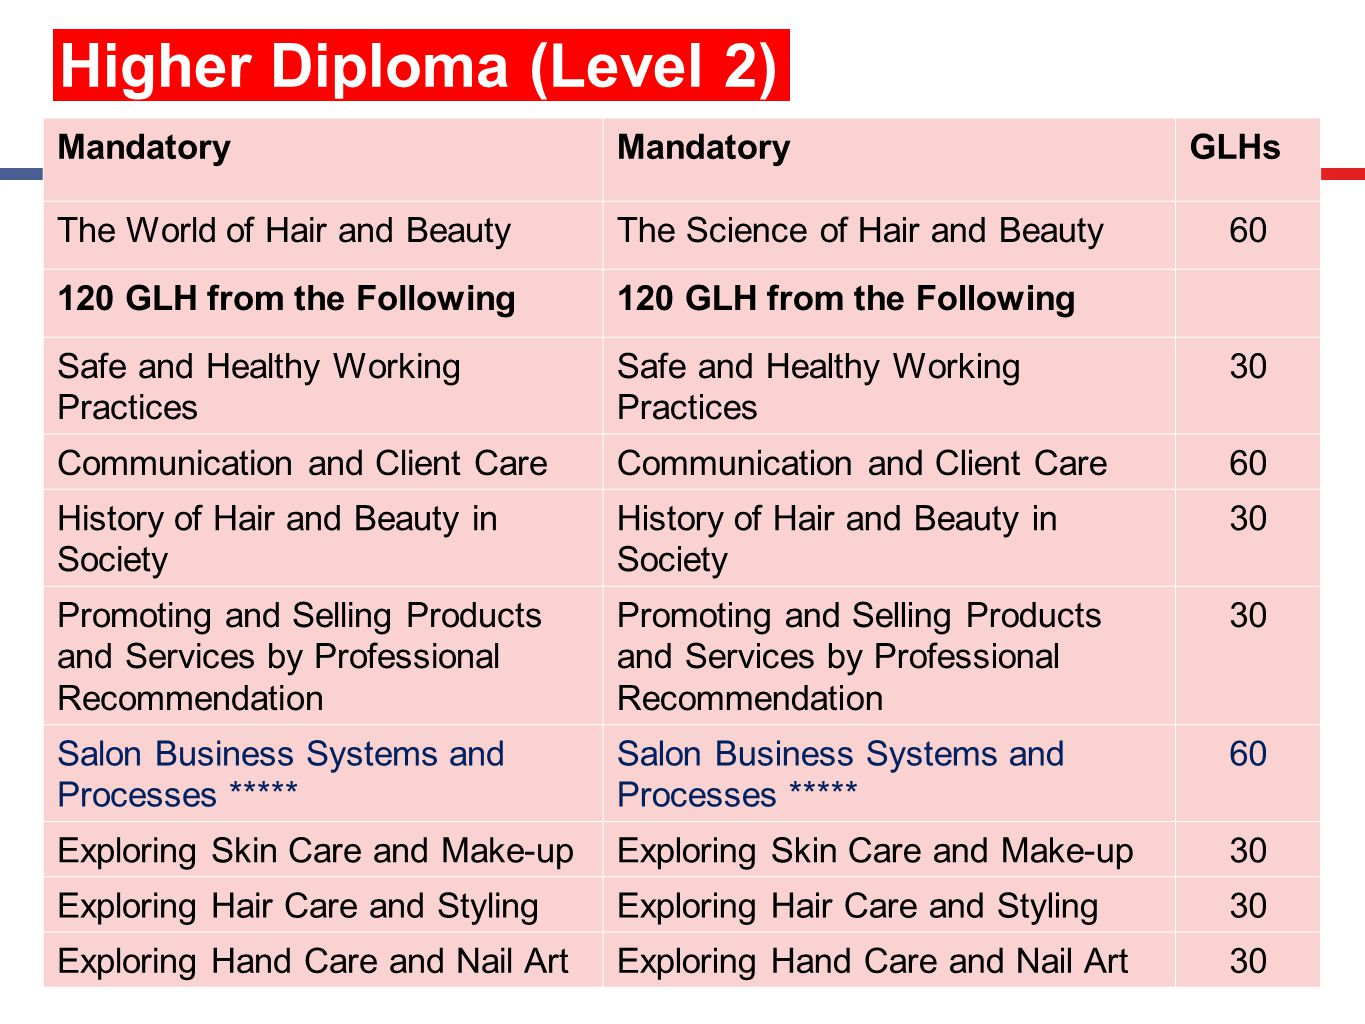 27 Higher Diploma (Level 2) Mandatory GLHs The World of Hair and BeautyThe Science of Hair and Beauty60 120 GLH from the Following Safe and Healthy Working Practices 30 Communication and Client Care 60 History of Hair and Beauty in Society 30 Promoting and Selling Products and Services by Professional Recommendation 30 Salon Business Systems and Processes ***** 60 Exploring Skin Care and Make-up 30 Exploring Hair Care and Styling 30 Exploring Hand Care and Nail Art 30